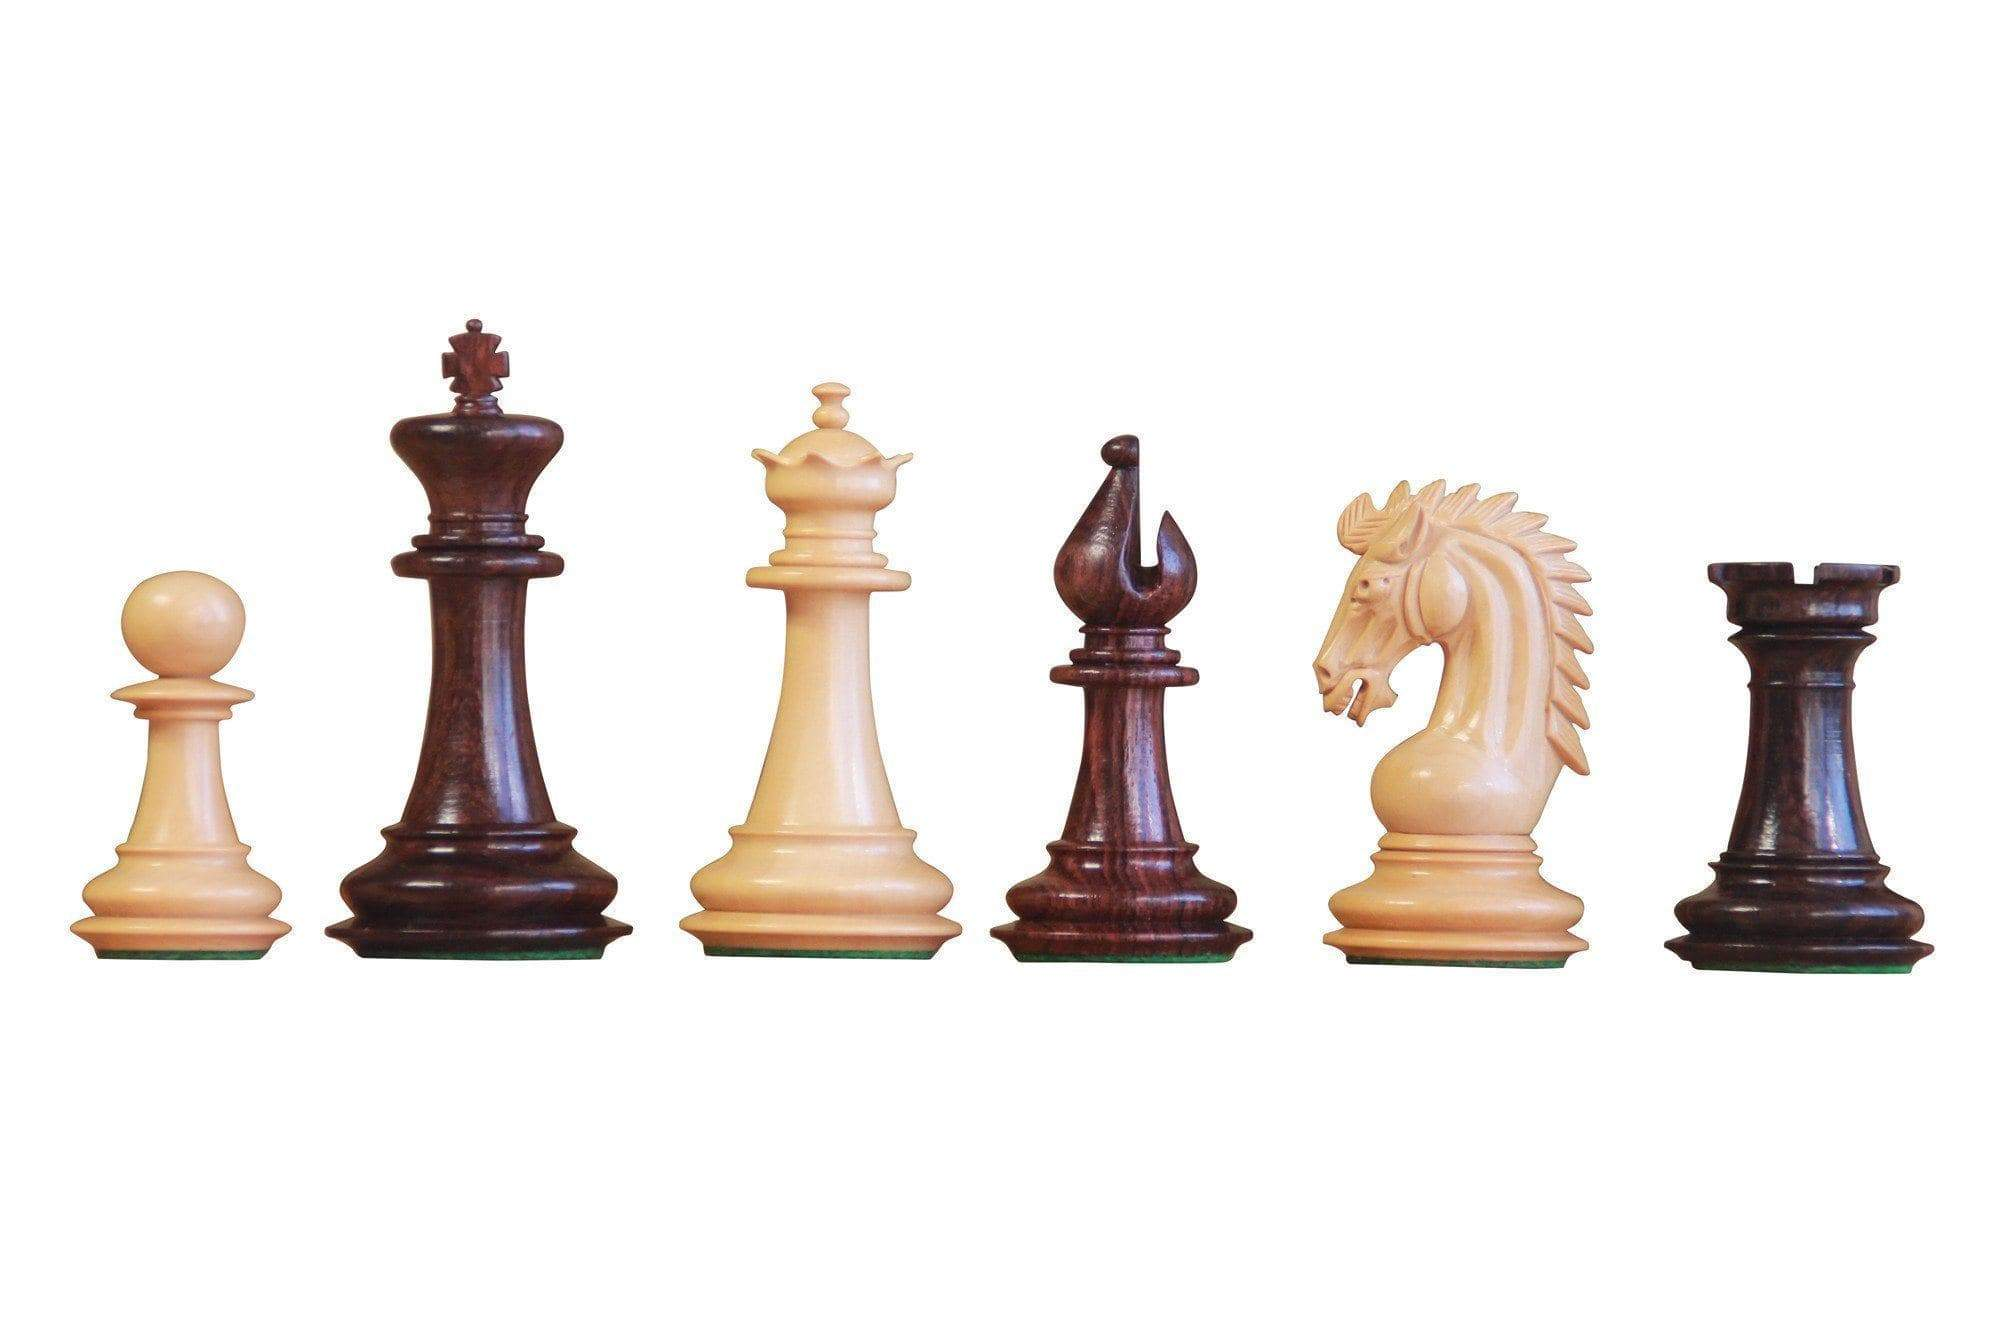 Unique chess sets artistic ornate staunton chess sets official staunton chess company - Ornate chess sets ...